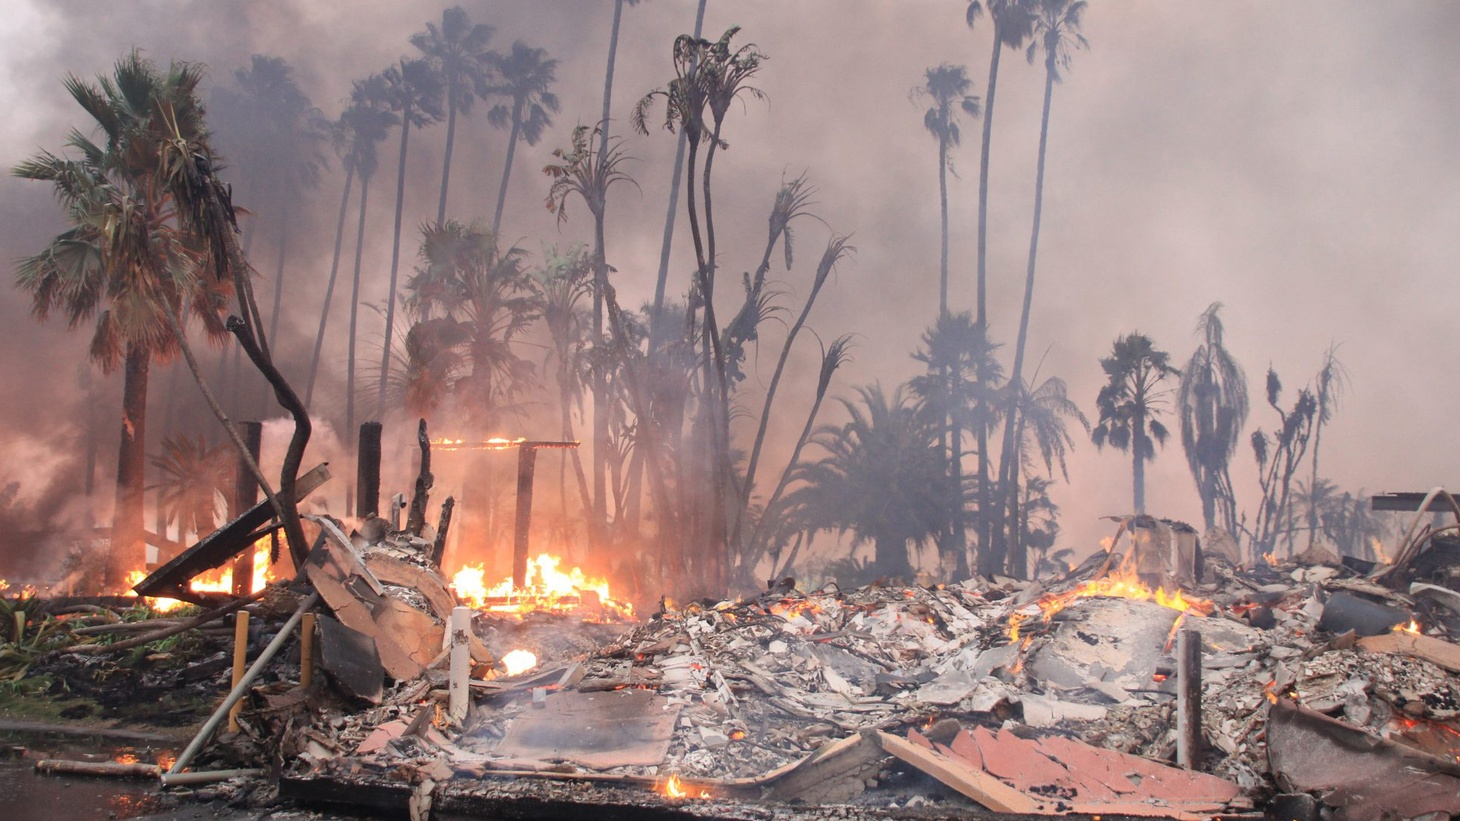 It's been nearly six months since the Thomas fire destroyed hundreds of homes in Ventura and Santa Barbara, including the iconic Hawaiian Village apartment complex just west of Ventura's City Hall.